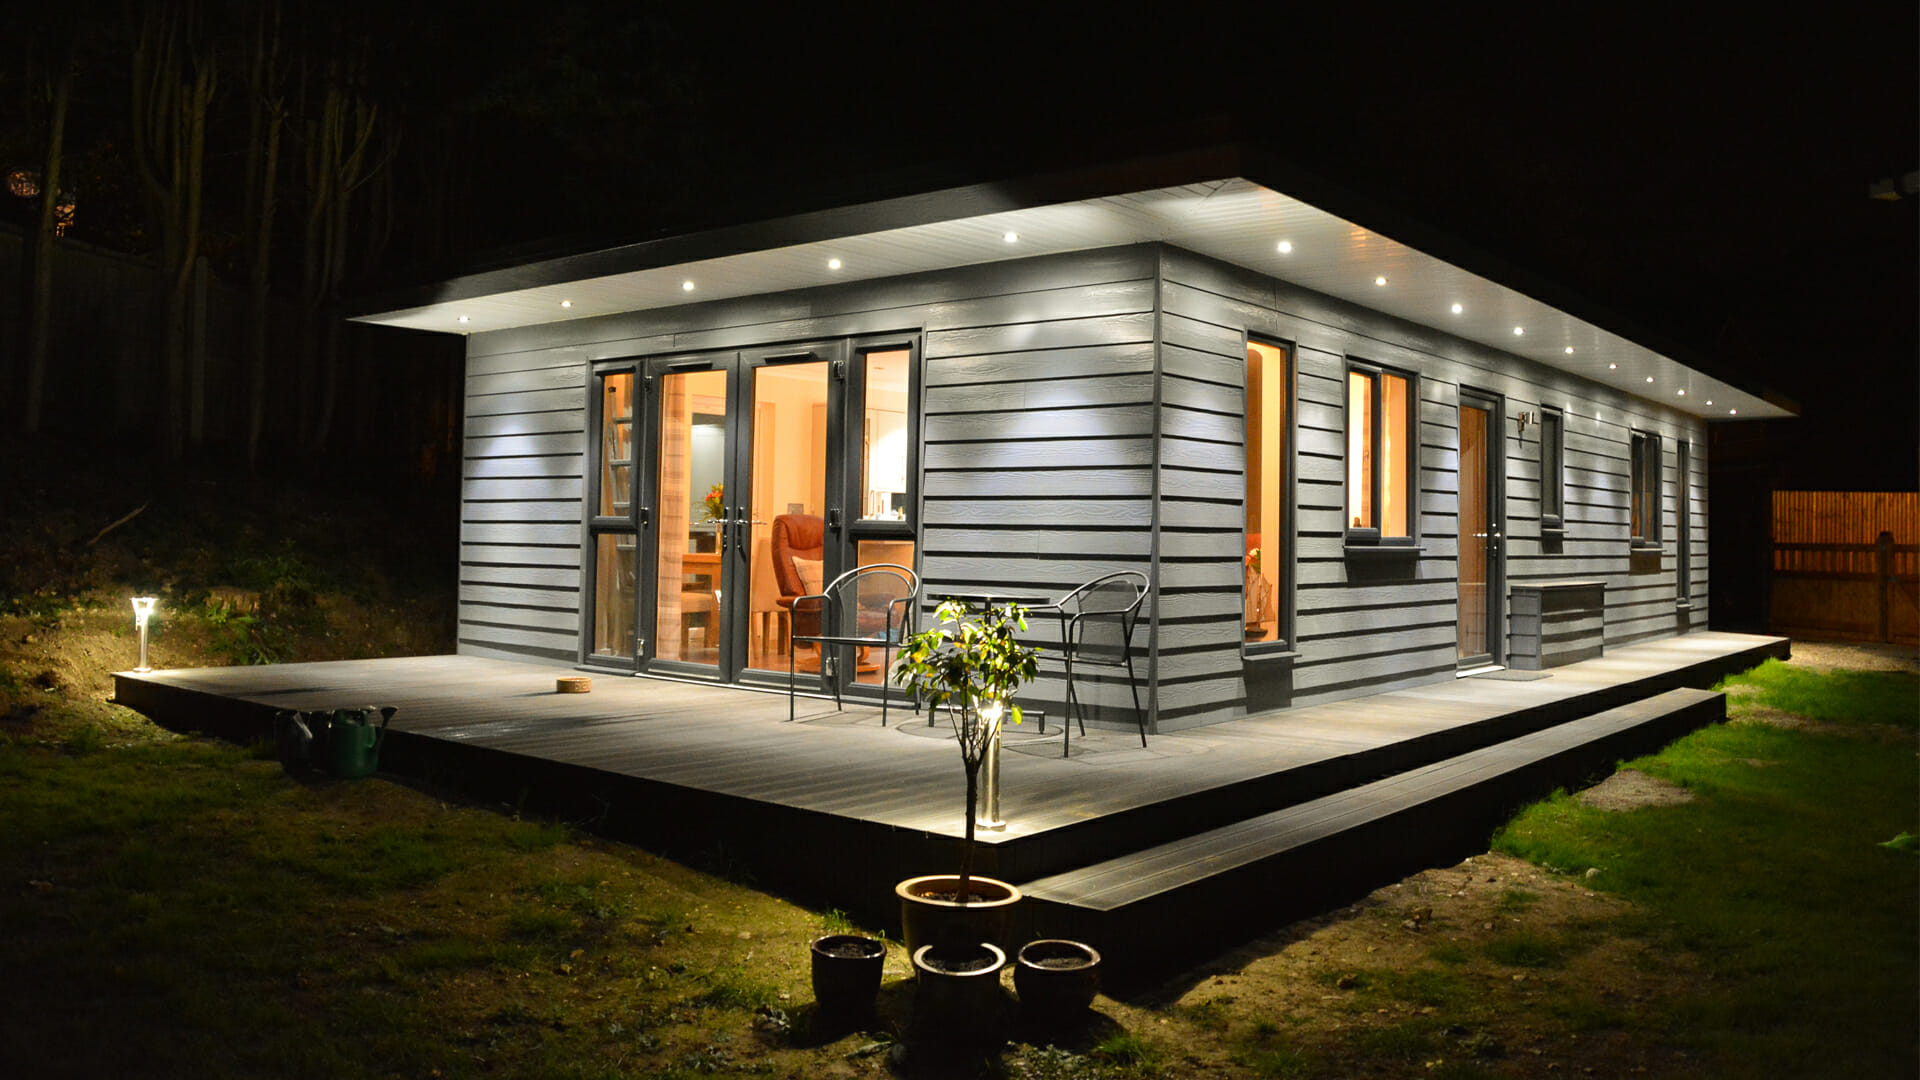 granny annexe ideas image shows a granny annexe with composite decking on the outside